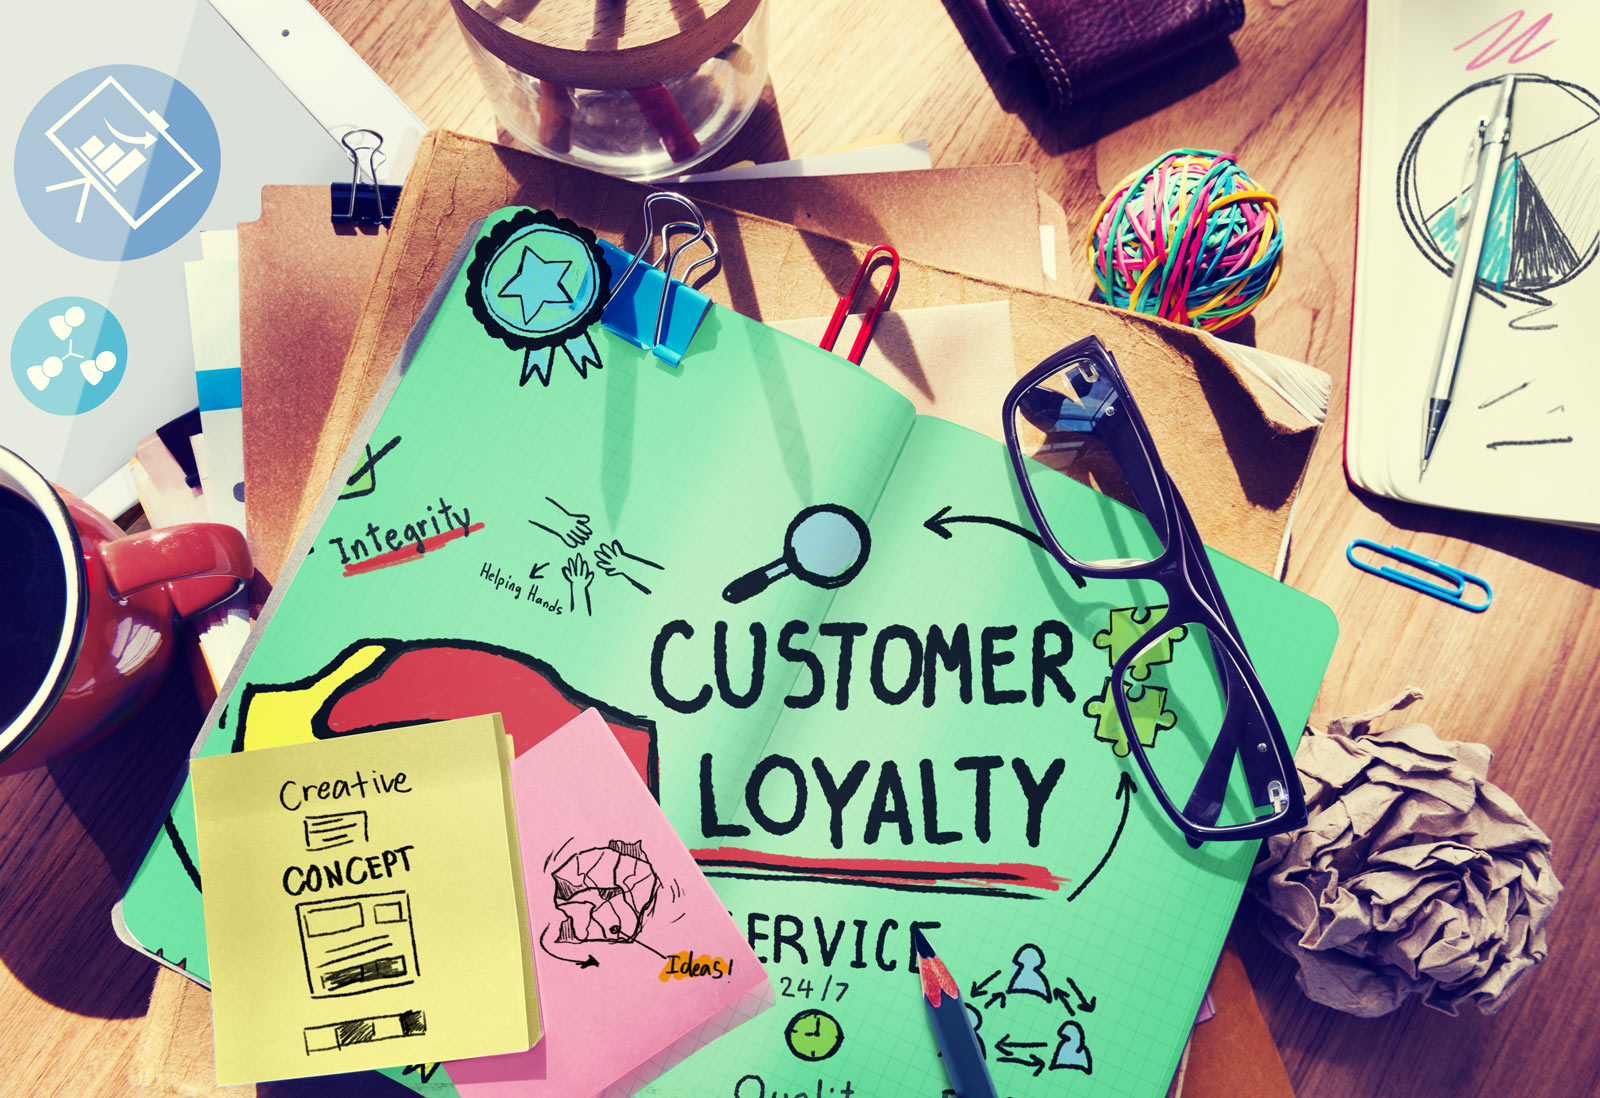 10 Proven Ways To Build Customer Loyalty